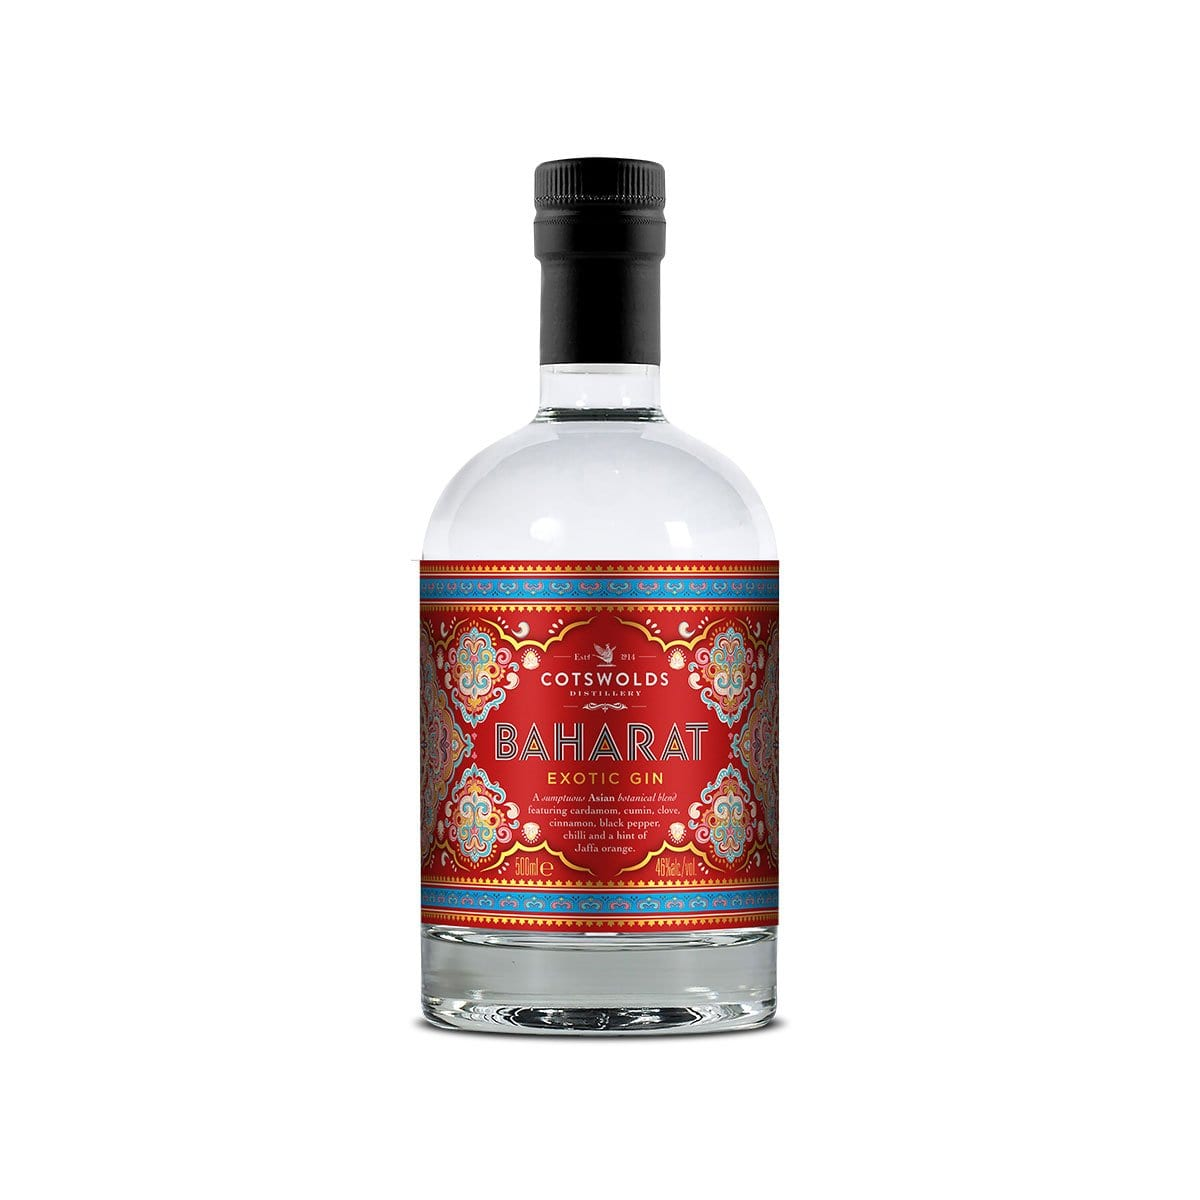 Cotswolds Baharat Gin from Cotswold Distillery